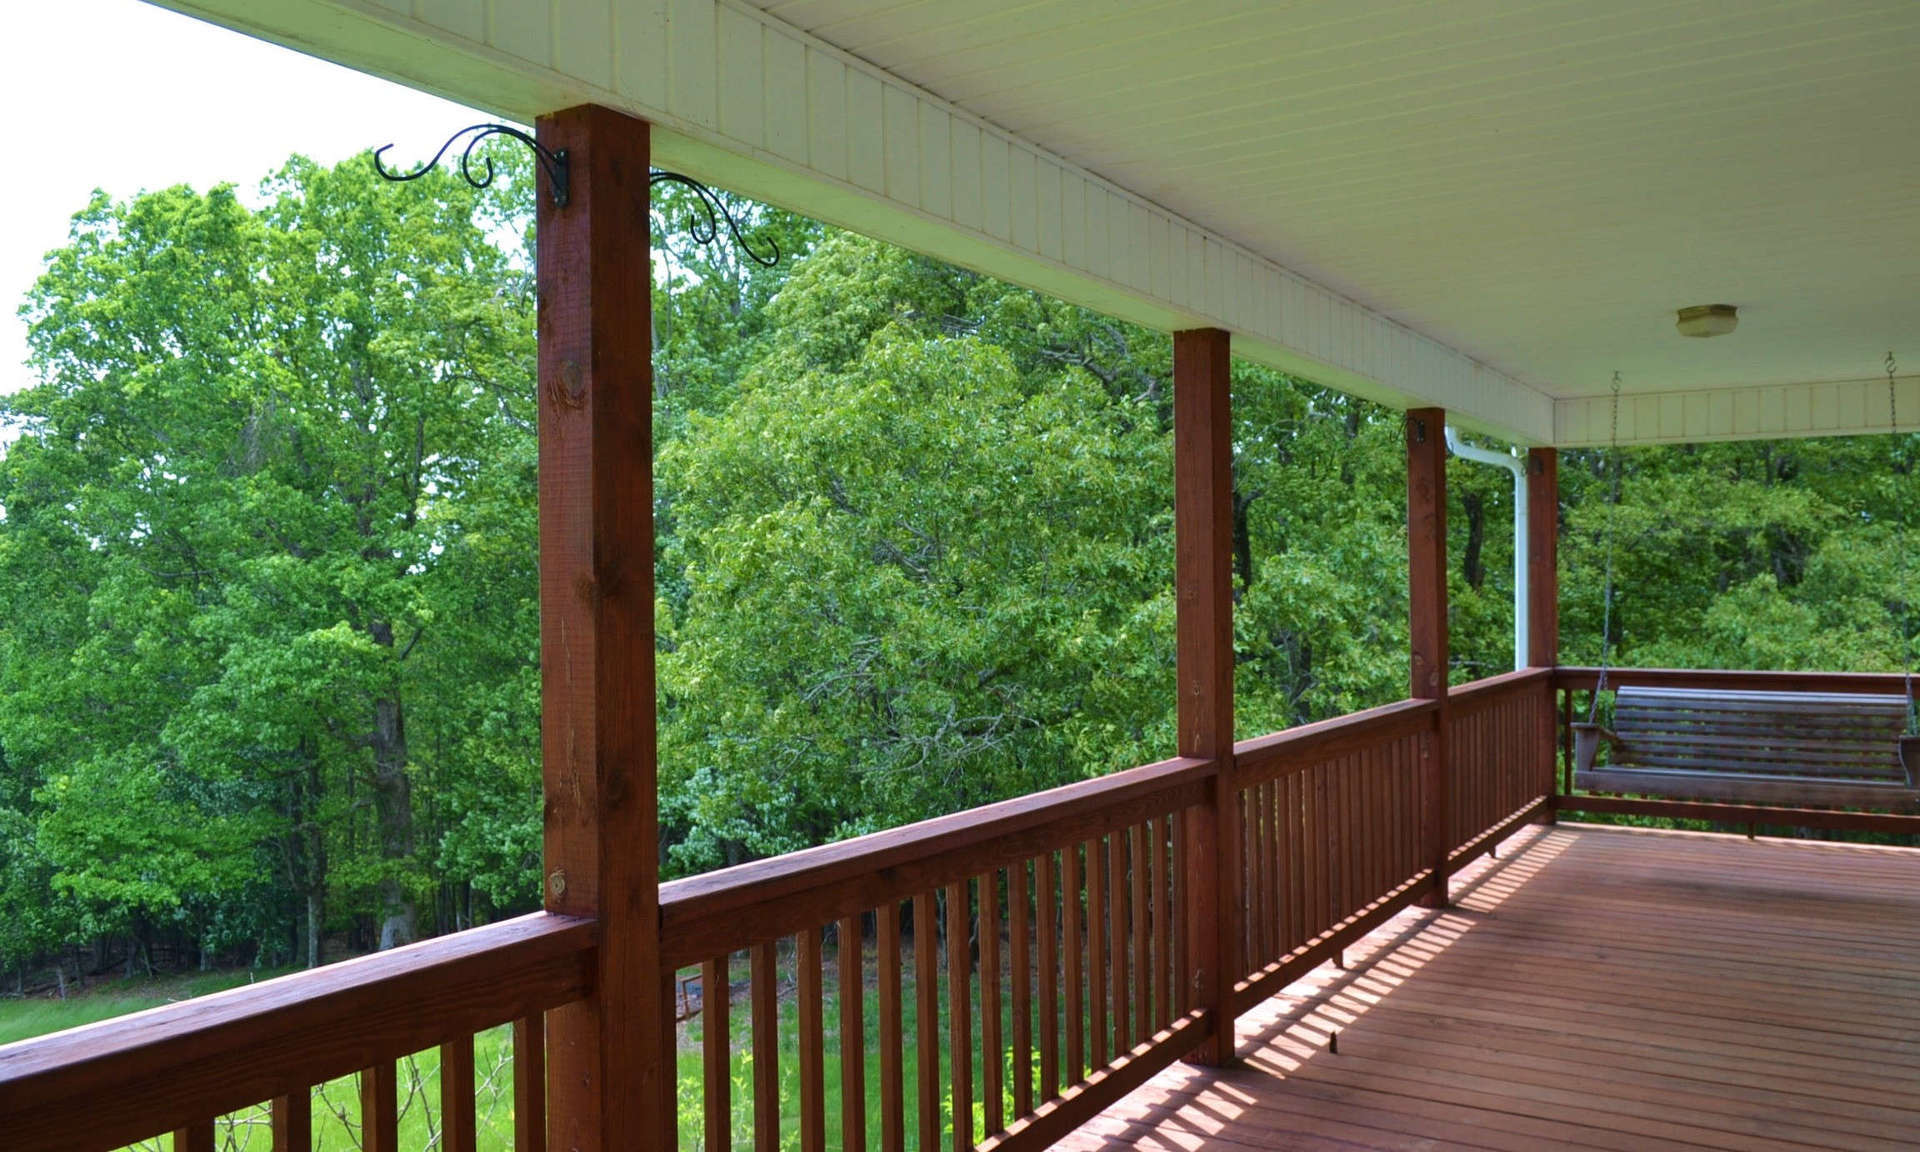 A full length covered deck is the ideal space to enjoy a tall glass of iced tea while enjoying the views, mountain scenery, and the sounds of Nature.